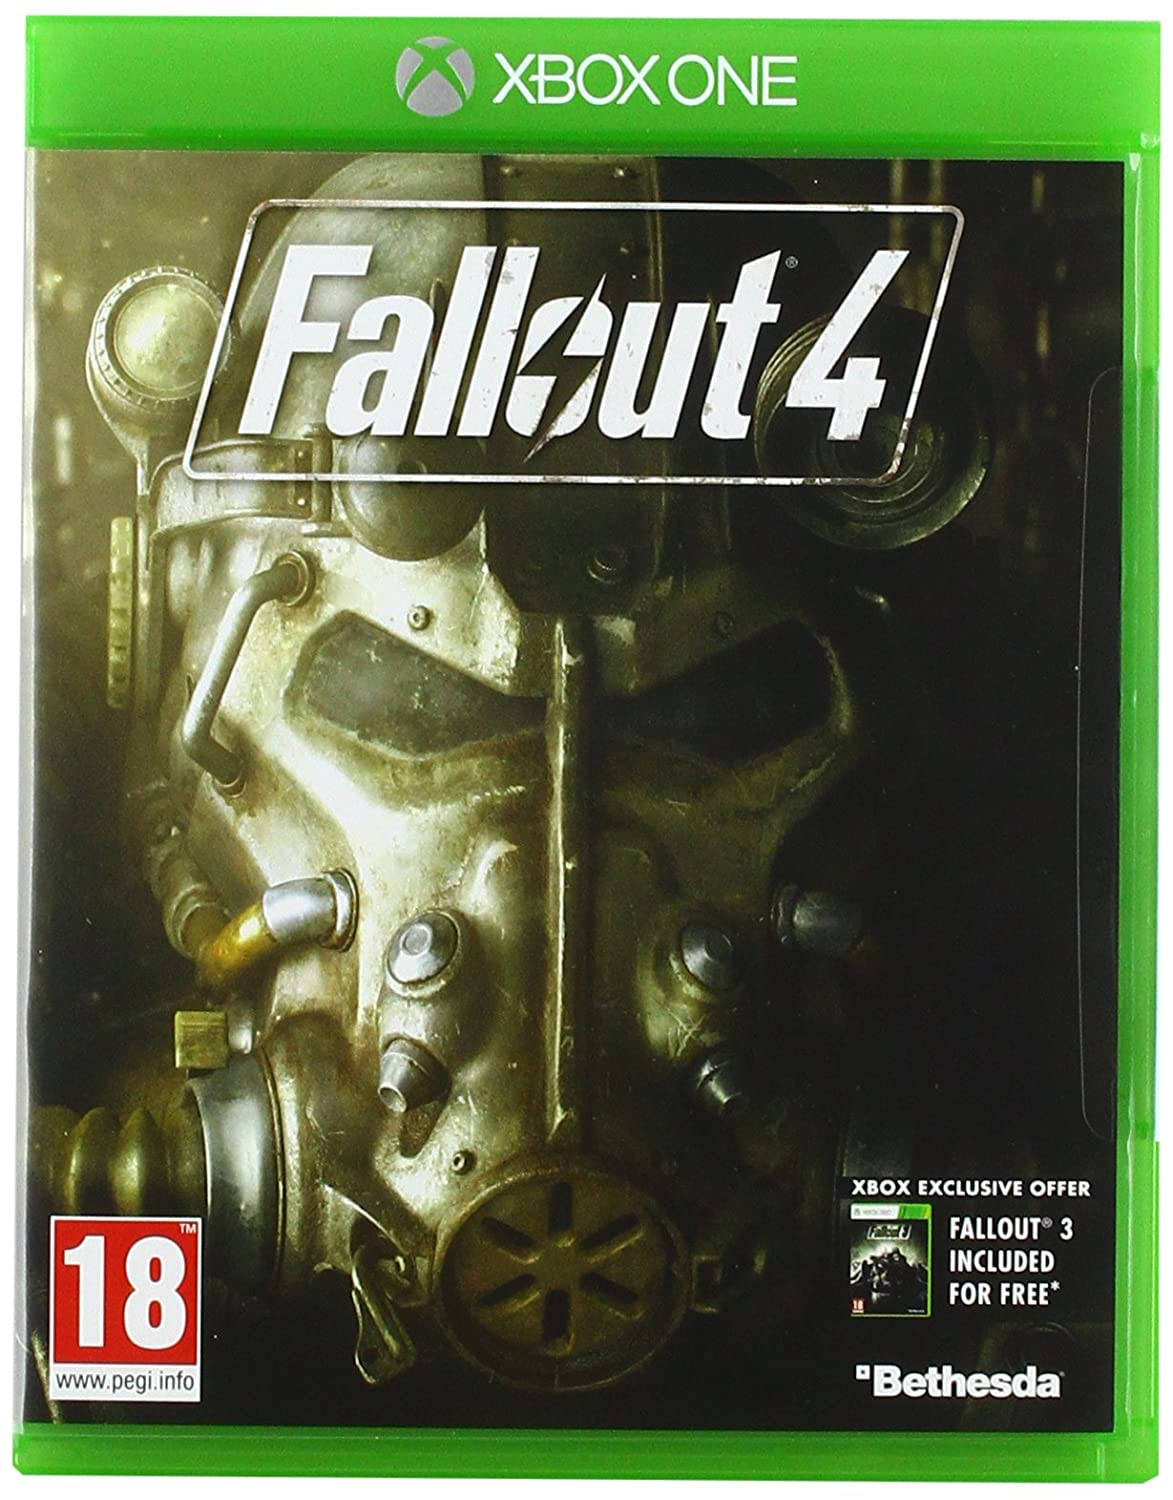 Fallout 4 (Xbox One): Amazon co uk: PC & Video Games